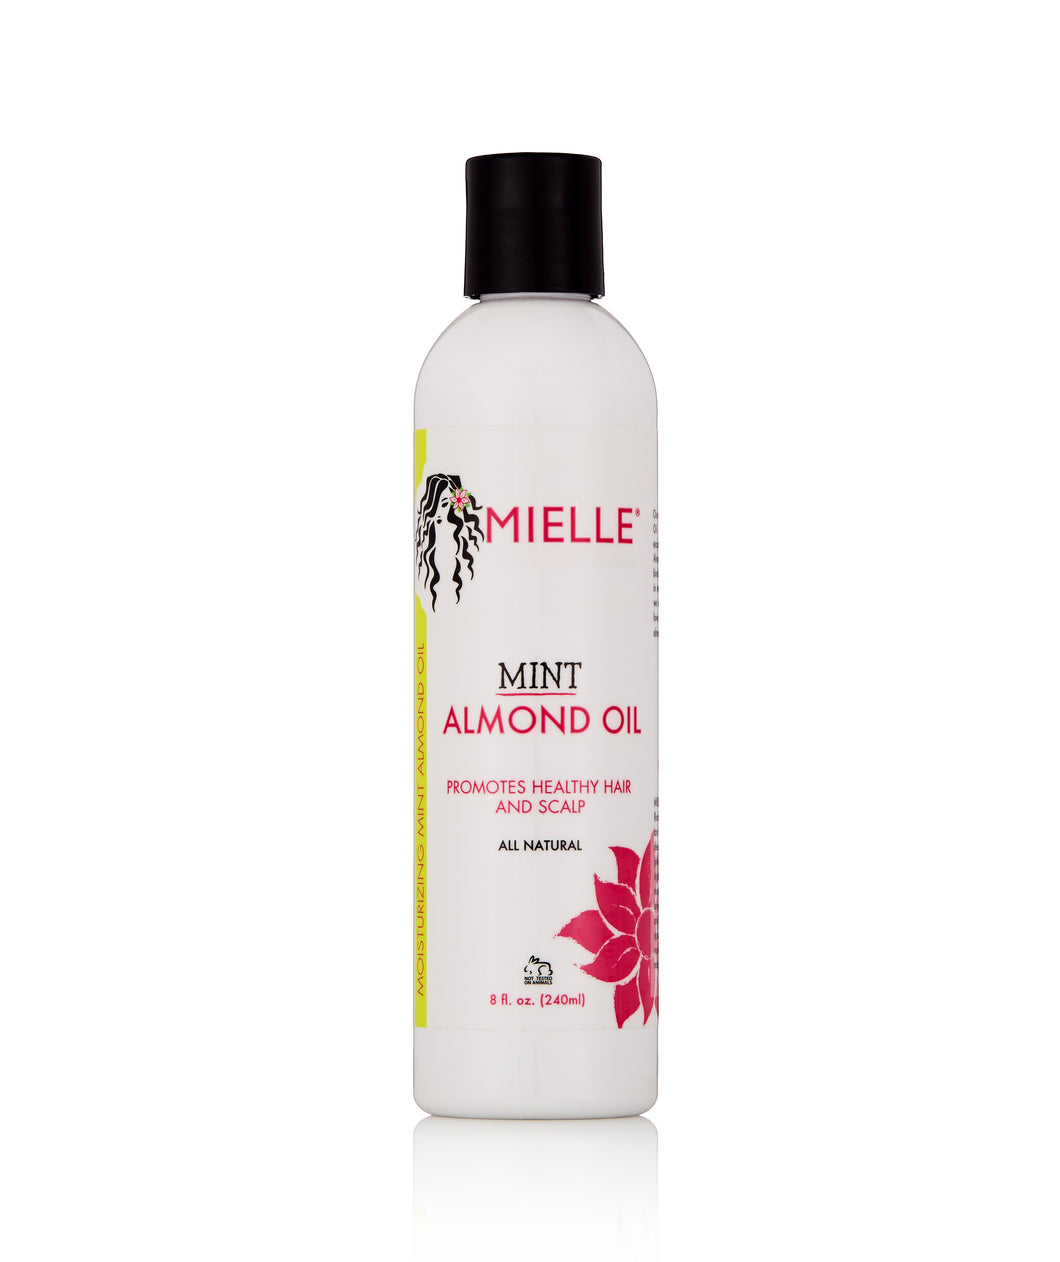 Mielle Organics Mint Almond Oil 8oz